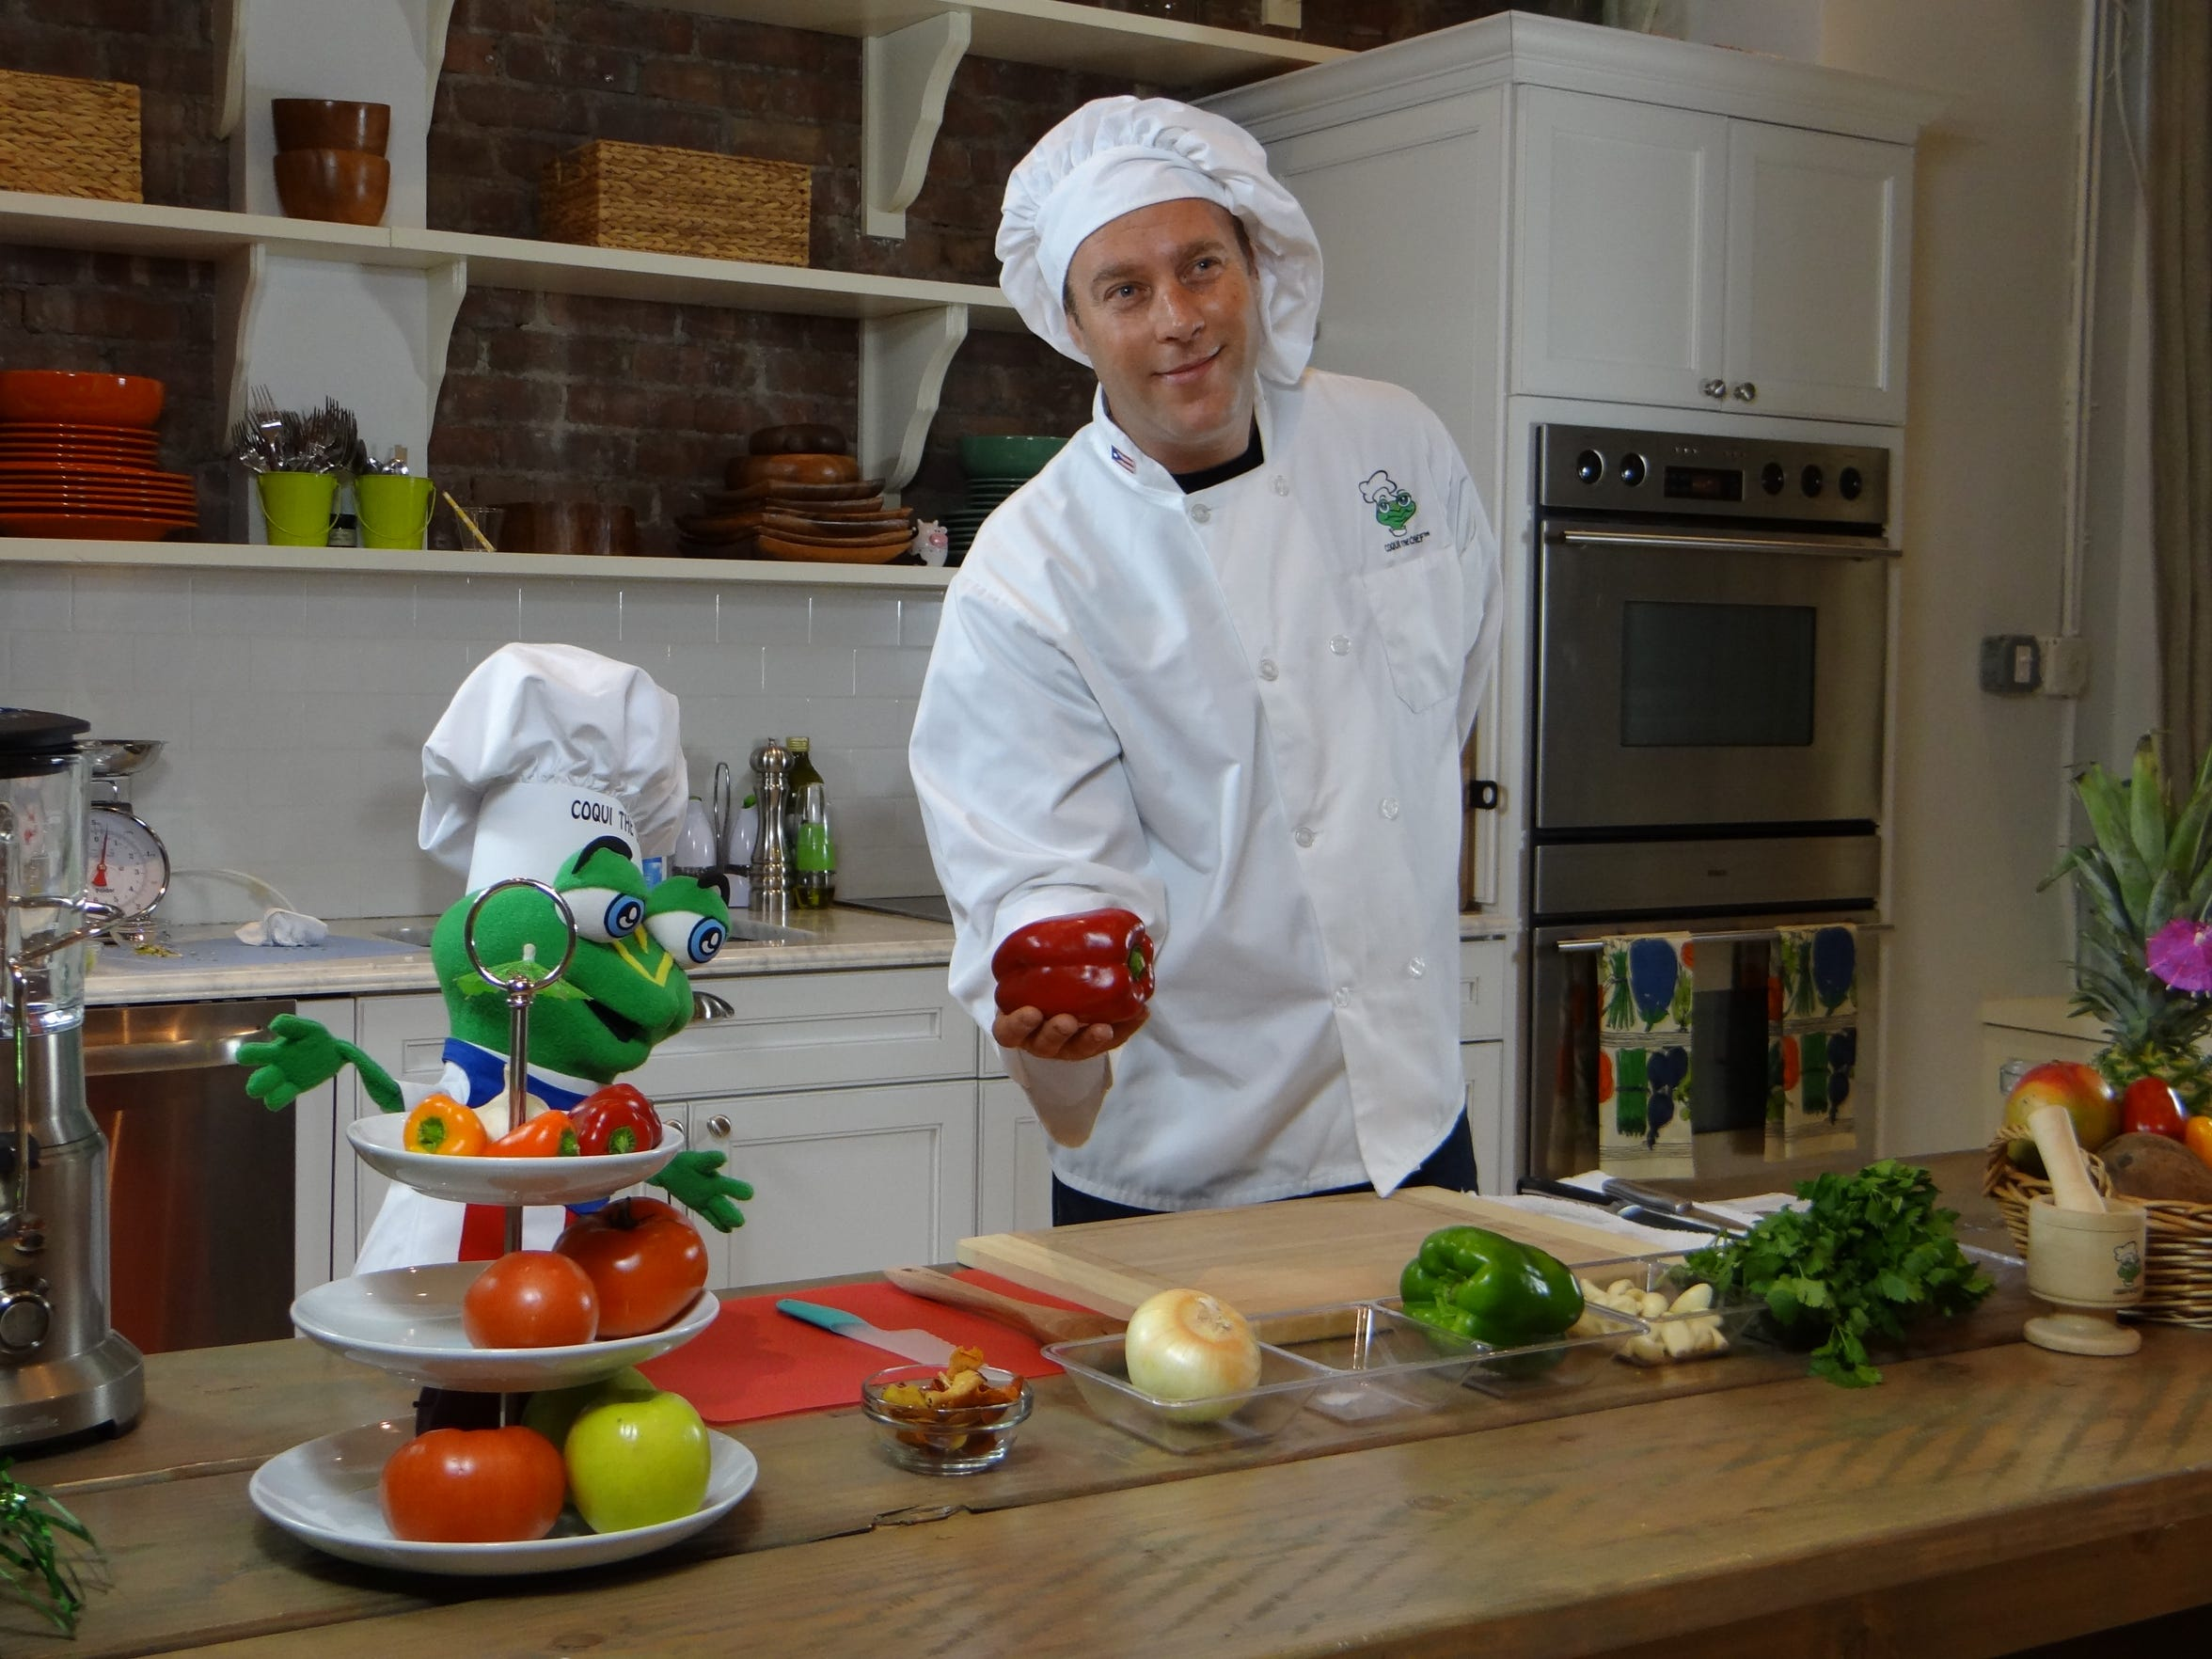 Christopher Ackerman, a research associate at the Center for Tobacco Studies at Rutgers School of Public Health and an amateur chef, teams up with Coqui the Chef to teach urban children how to cook nutritious recipes from inexpensive ingredients found in their neighborhood stores.